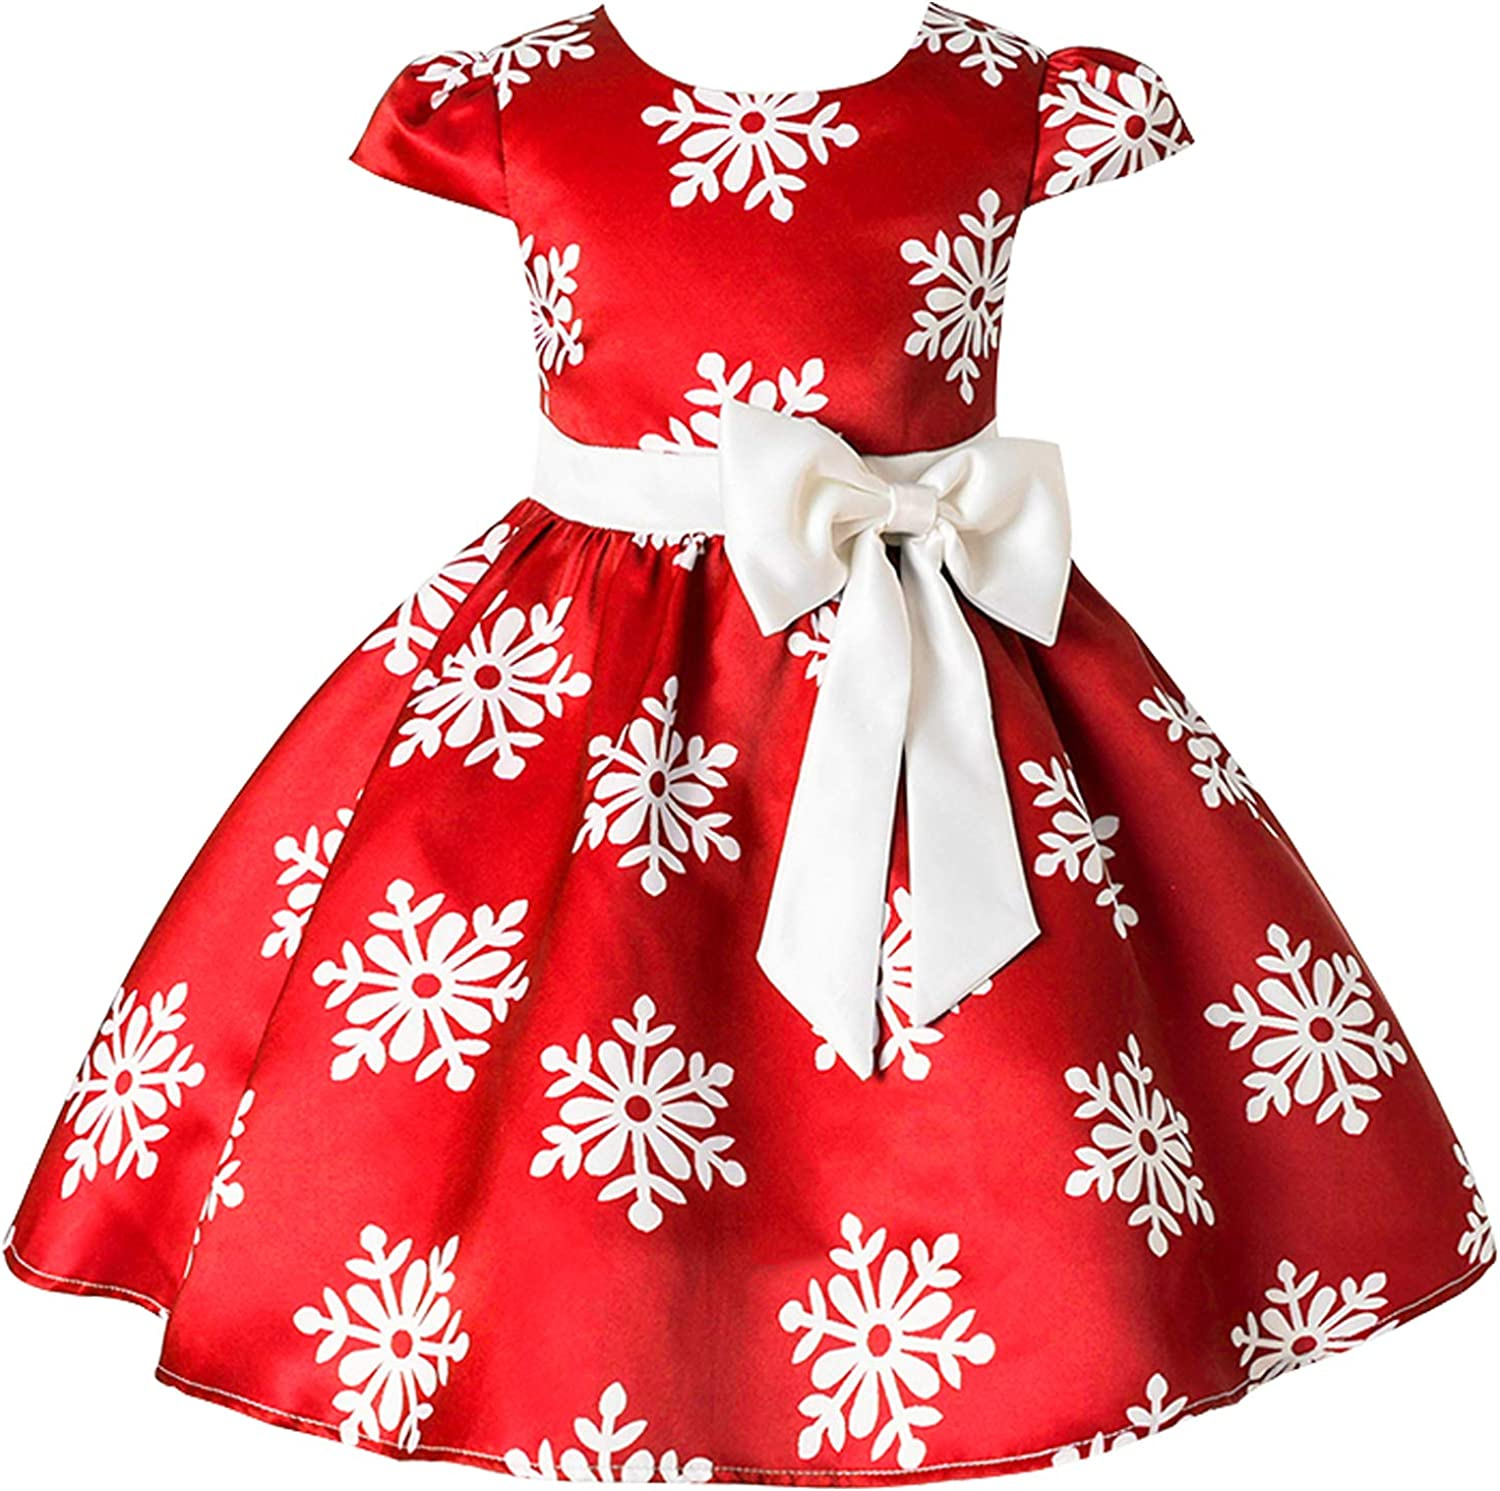 6-6 Years Christmas Holiday Dress for Toddler Girls Snow Party Queen Dress  Snowman Silk Christmas Flower Dress